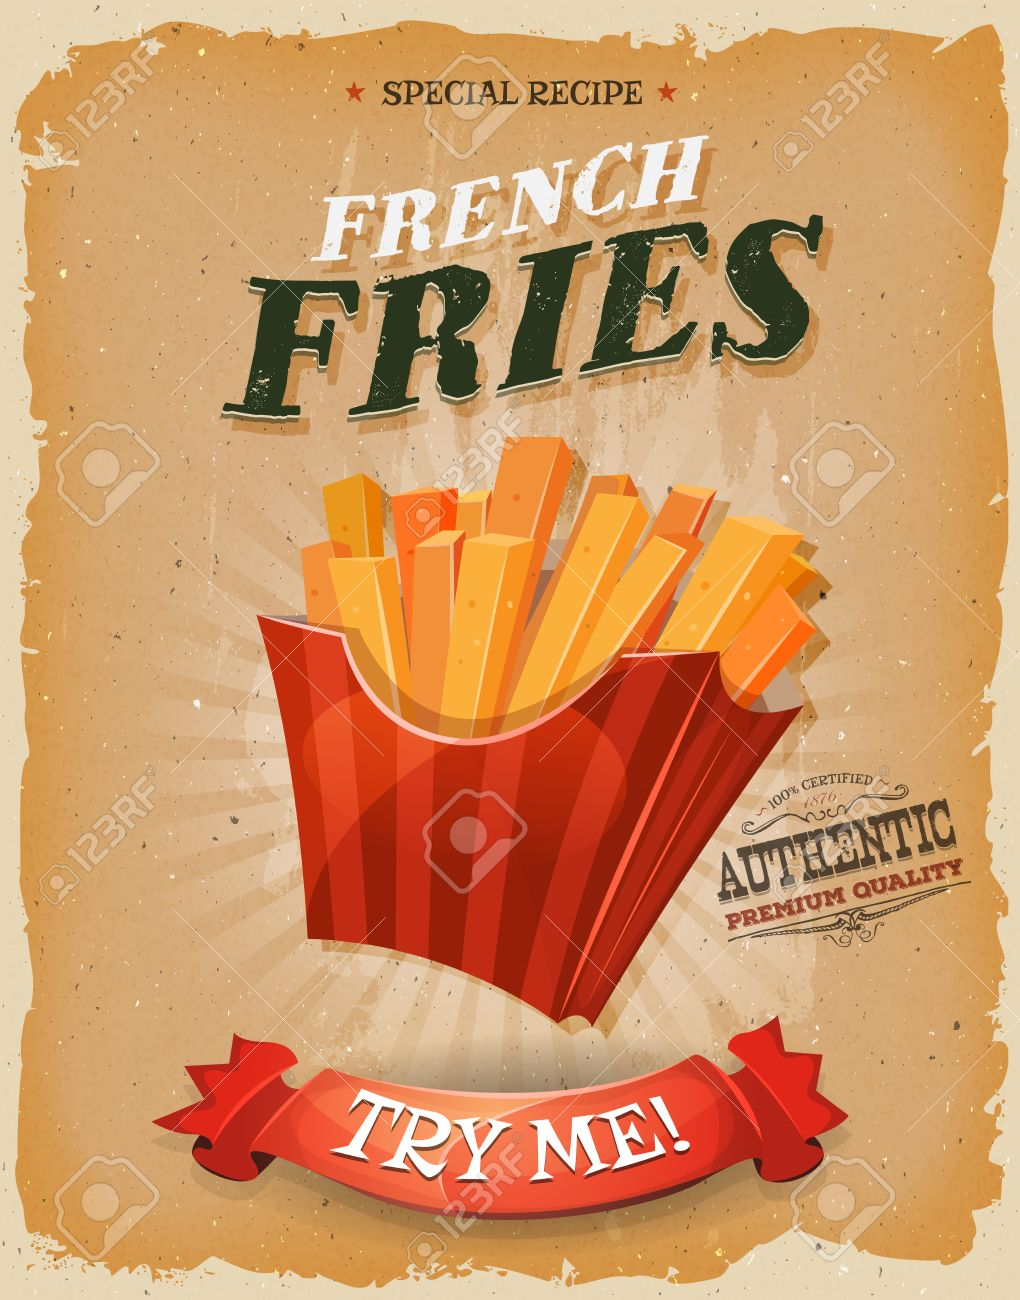 Poster design vintage - Illustration Of A Design Vintage And Grunge Textured Poster With French Fried Potatoes Icon